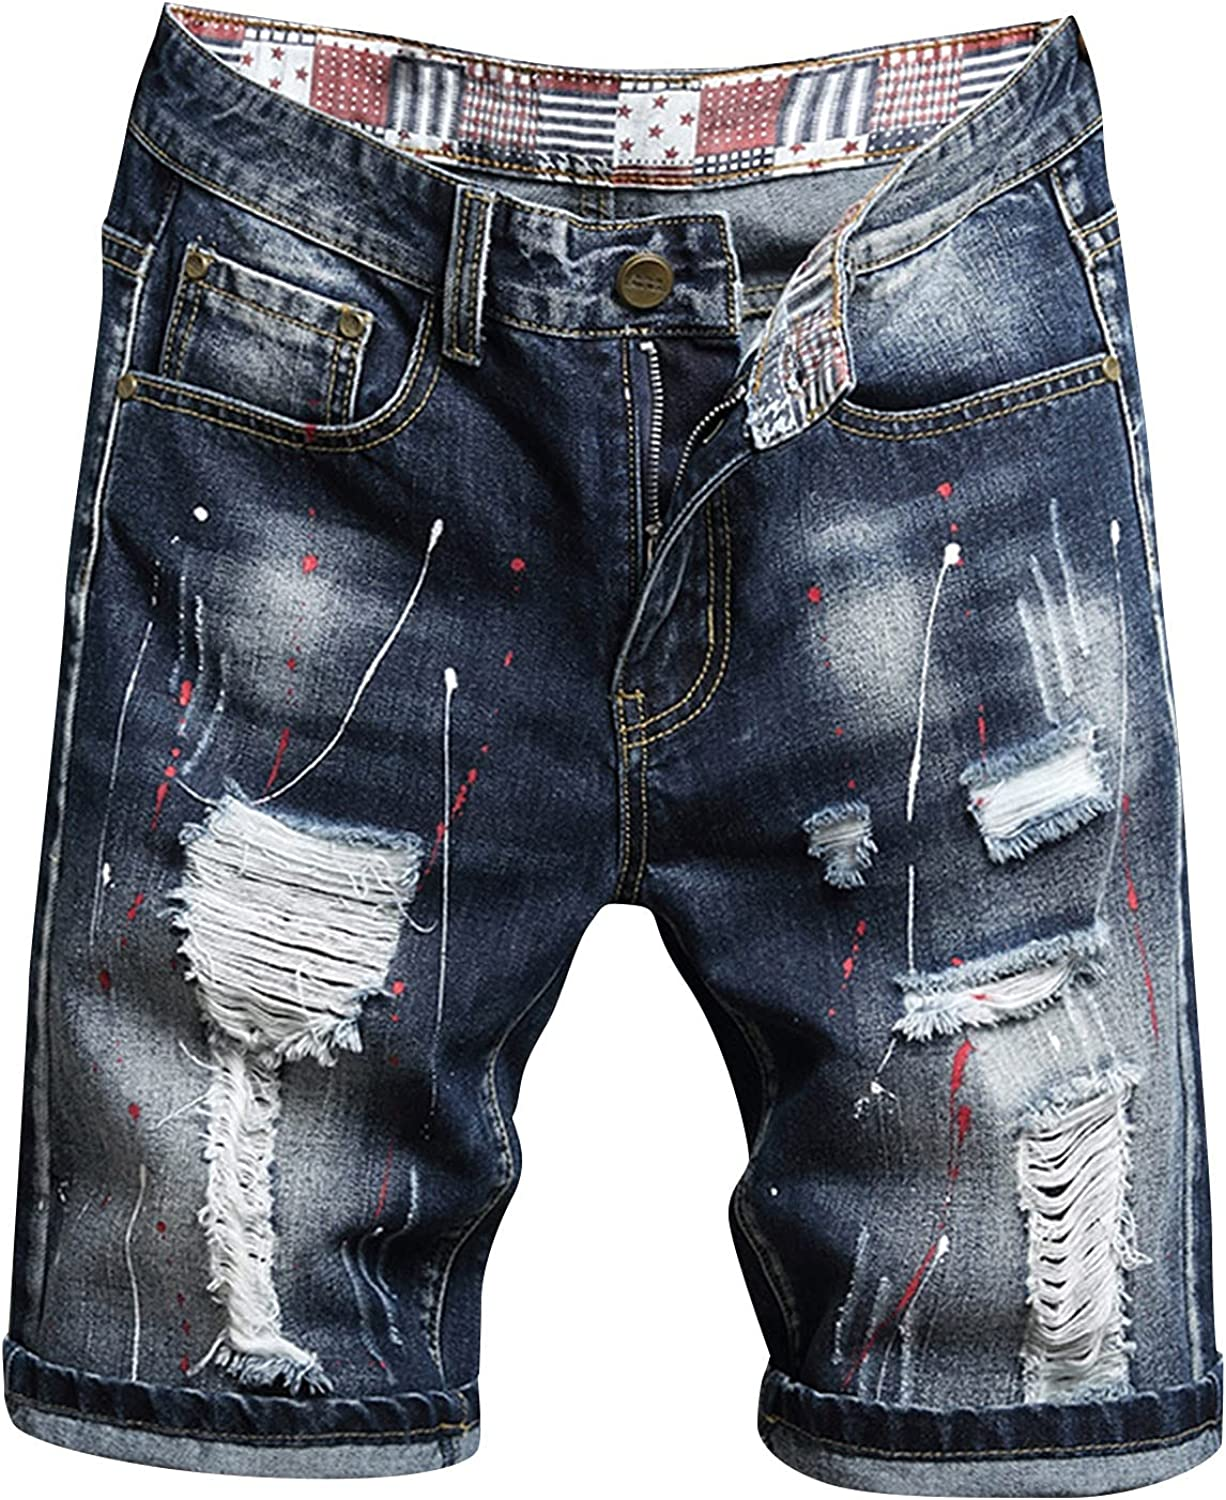 GTYX Mens Denim Shorts Big and Tall Summer Casual Retro Plus Size Trousers Fashion Sports Pants